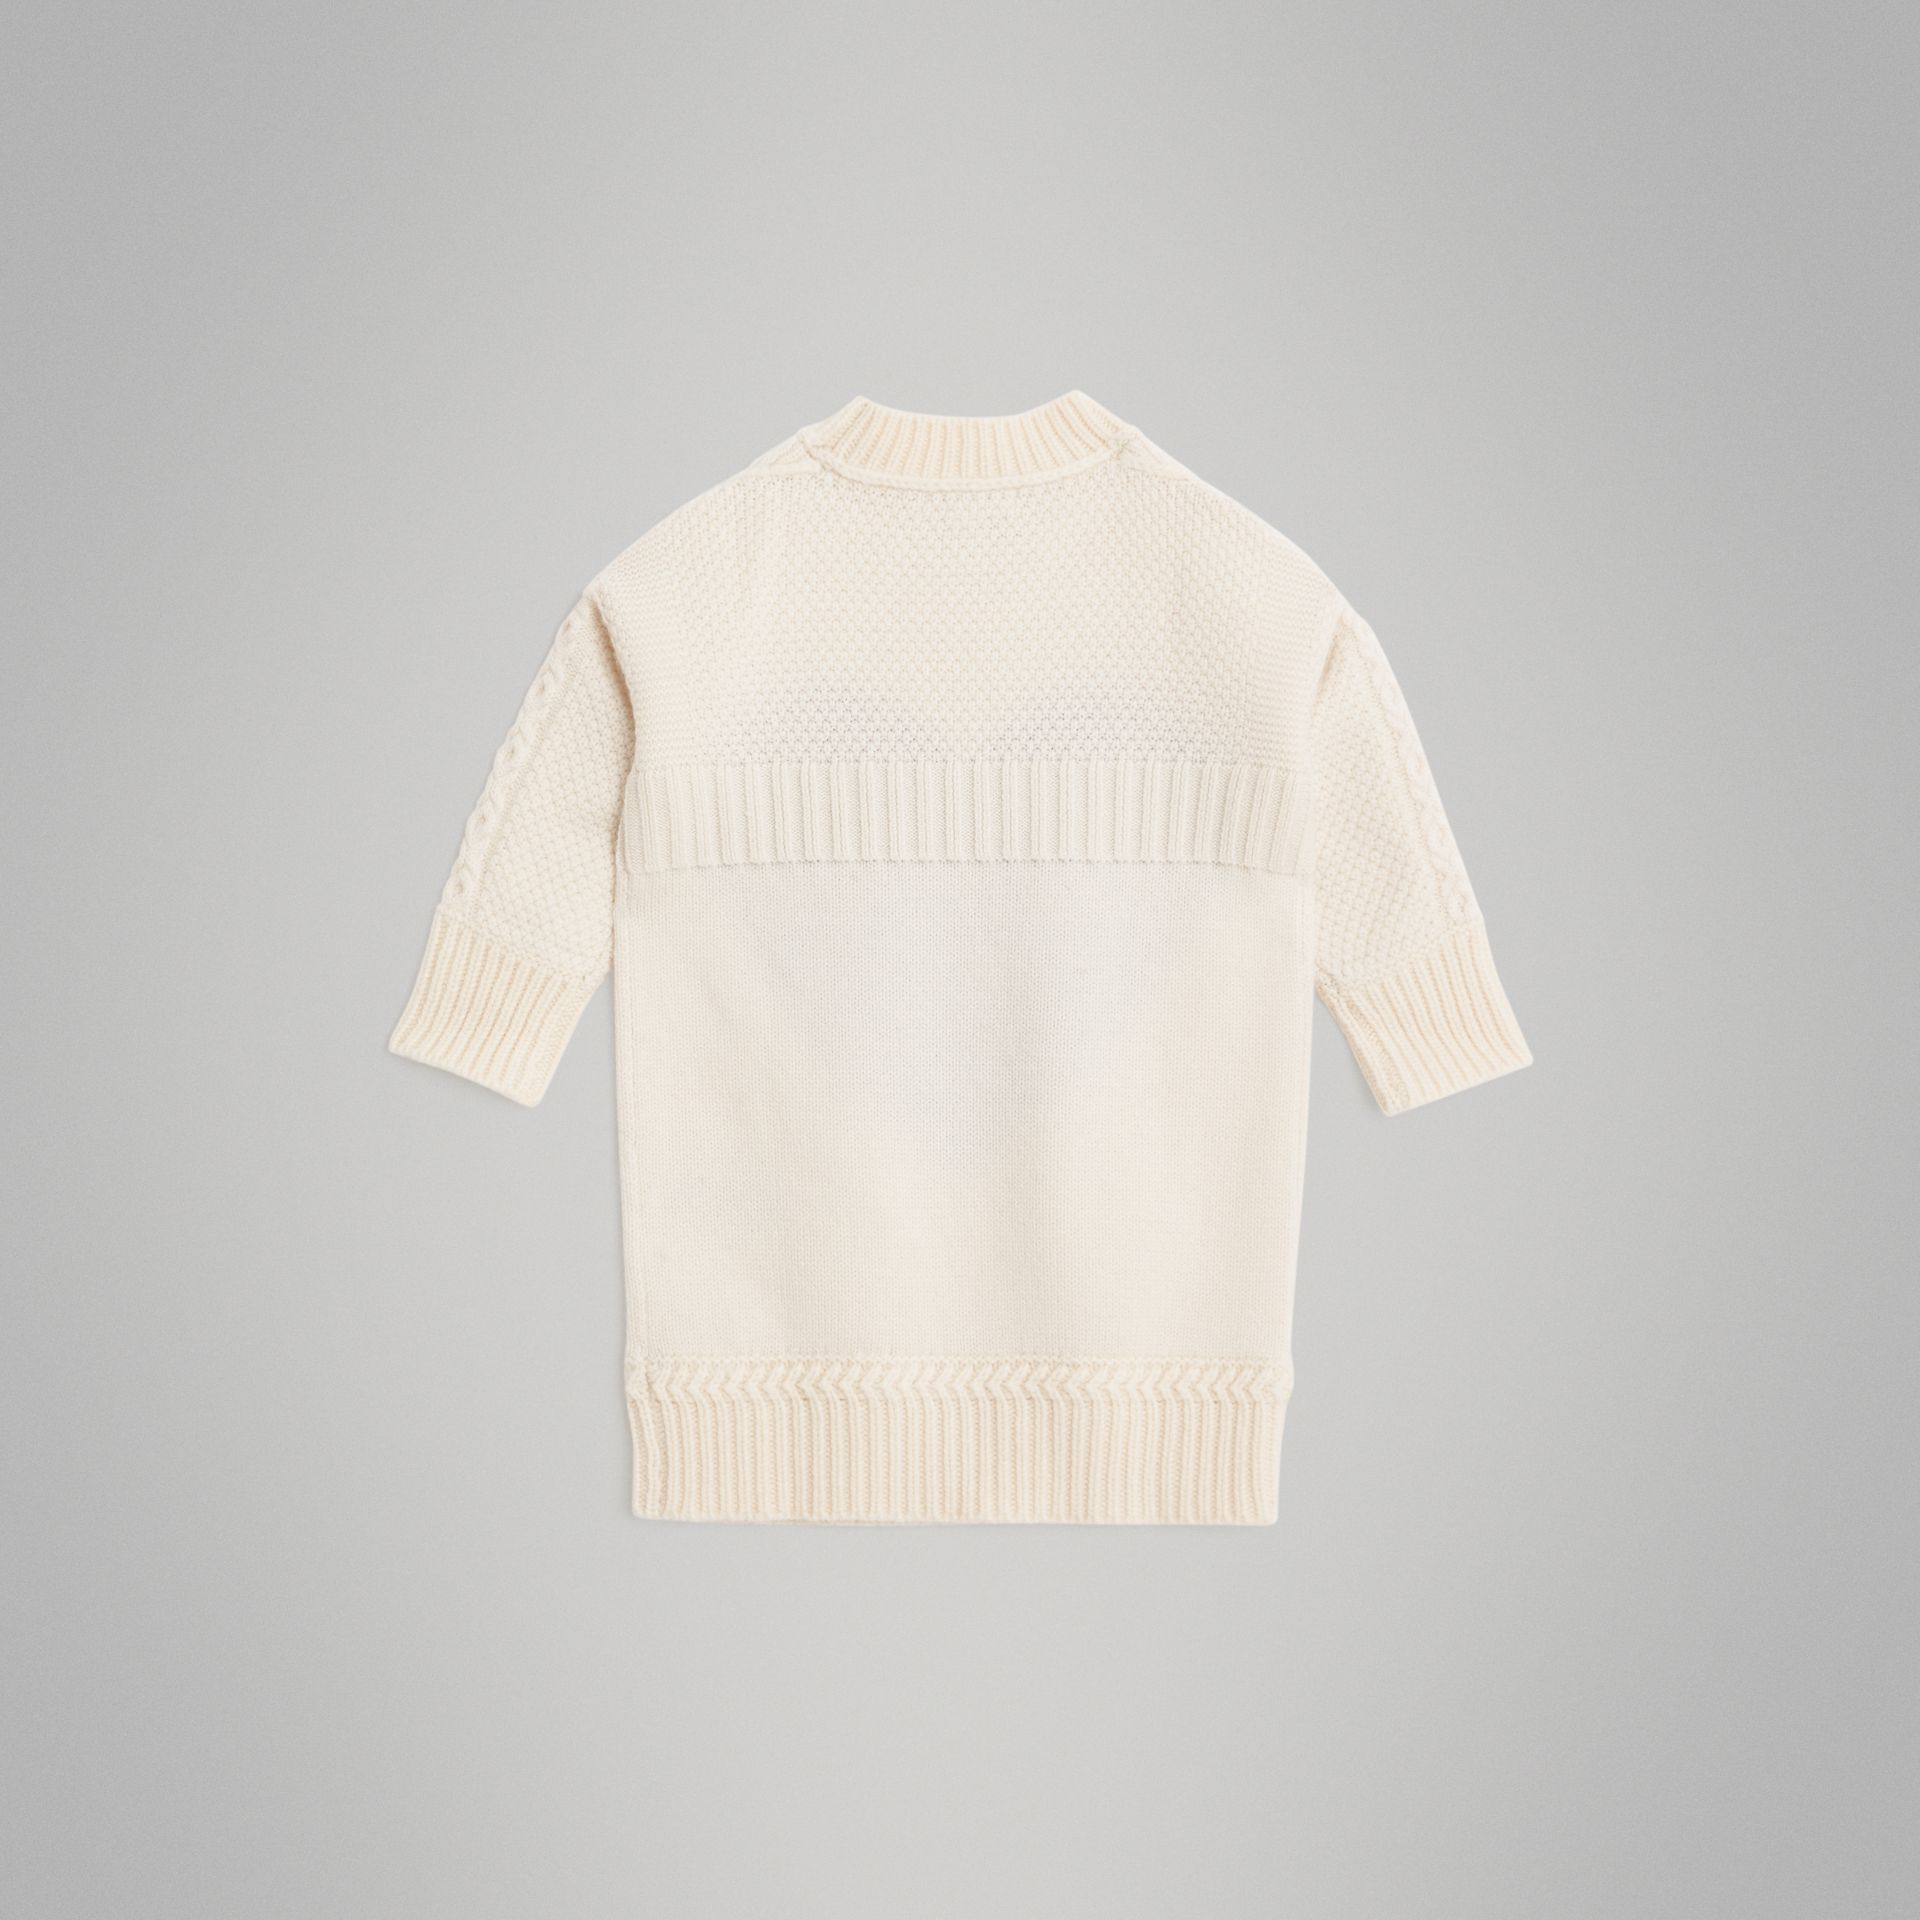 Heart Intarsia Wool Cashmere Sweater Dress in Ivory | Burberry - gallery image 3